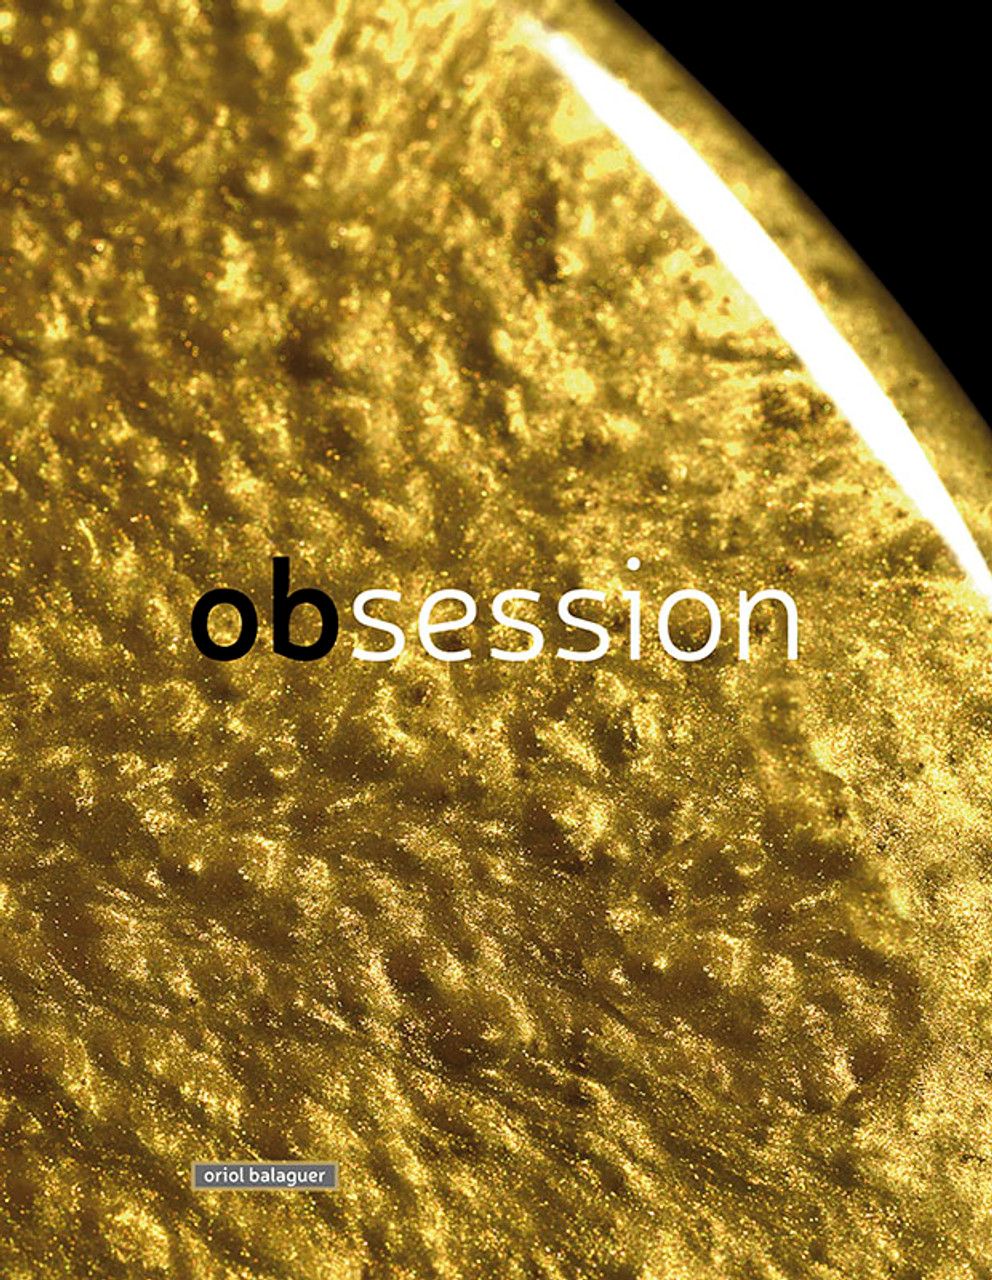 Obsession - Oriol Balaguer